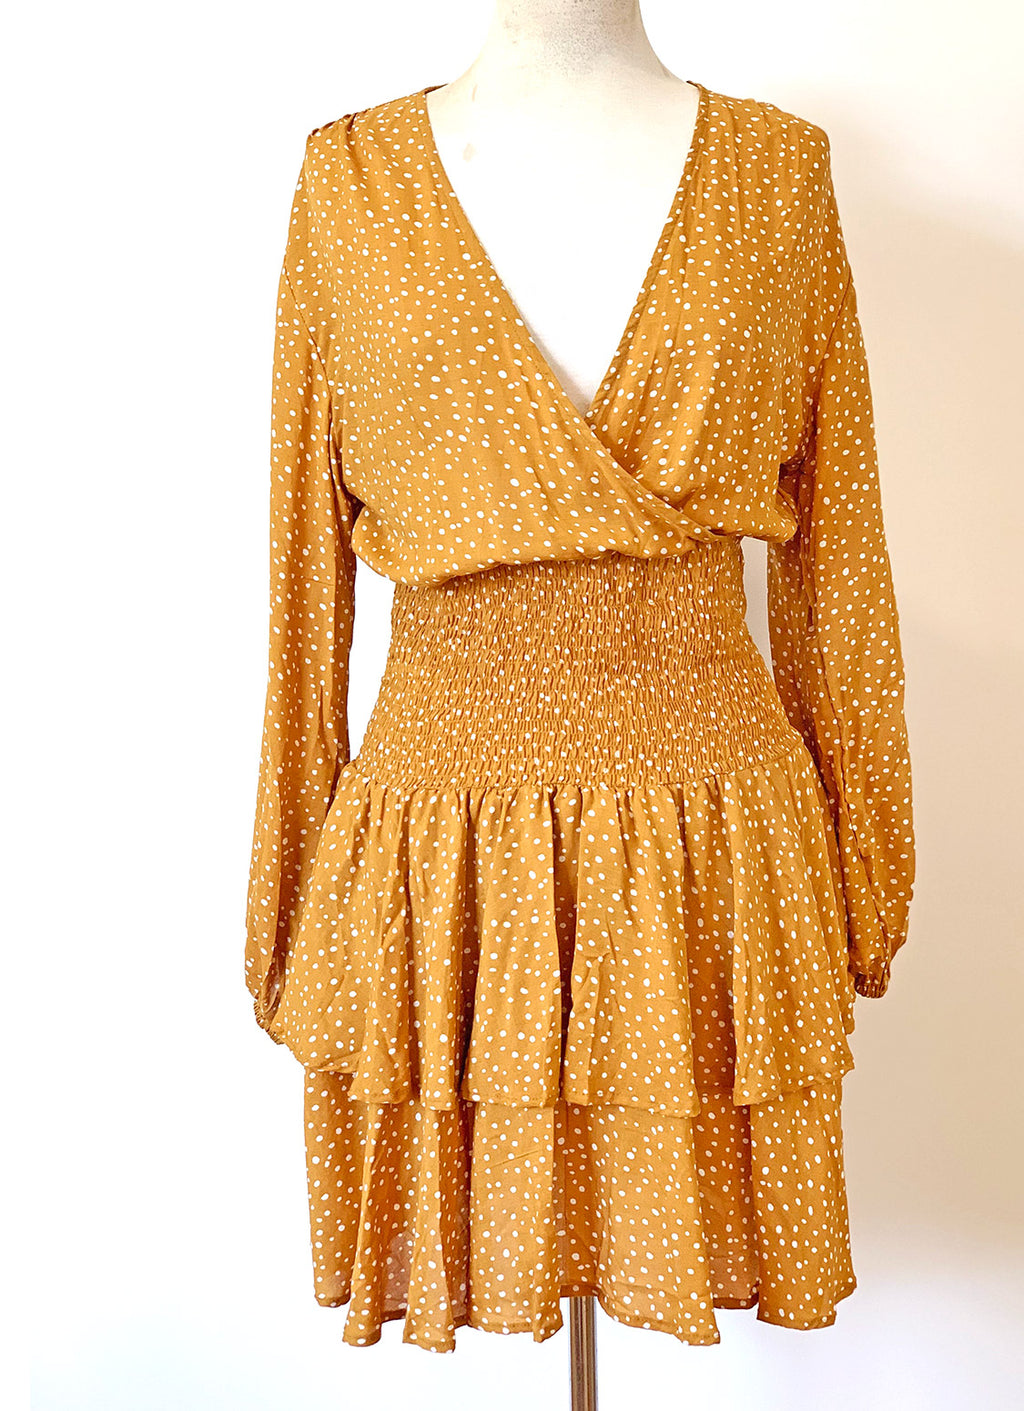 Bardot Dress - Tumeric